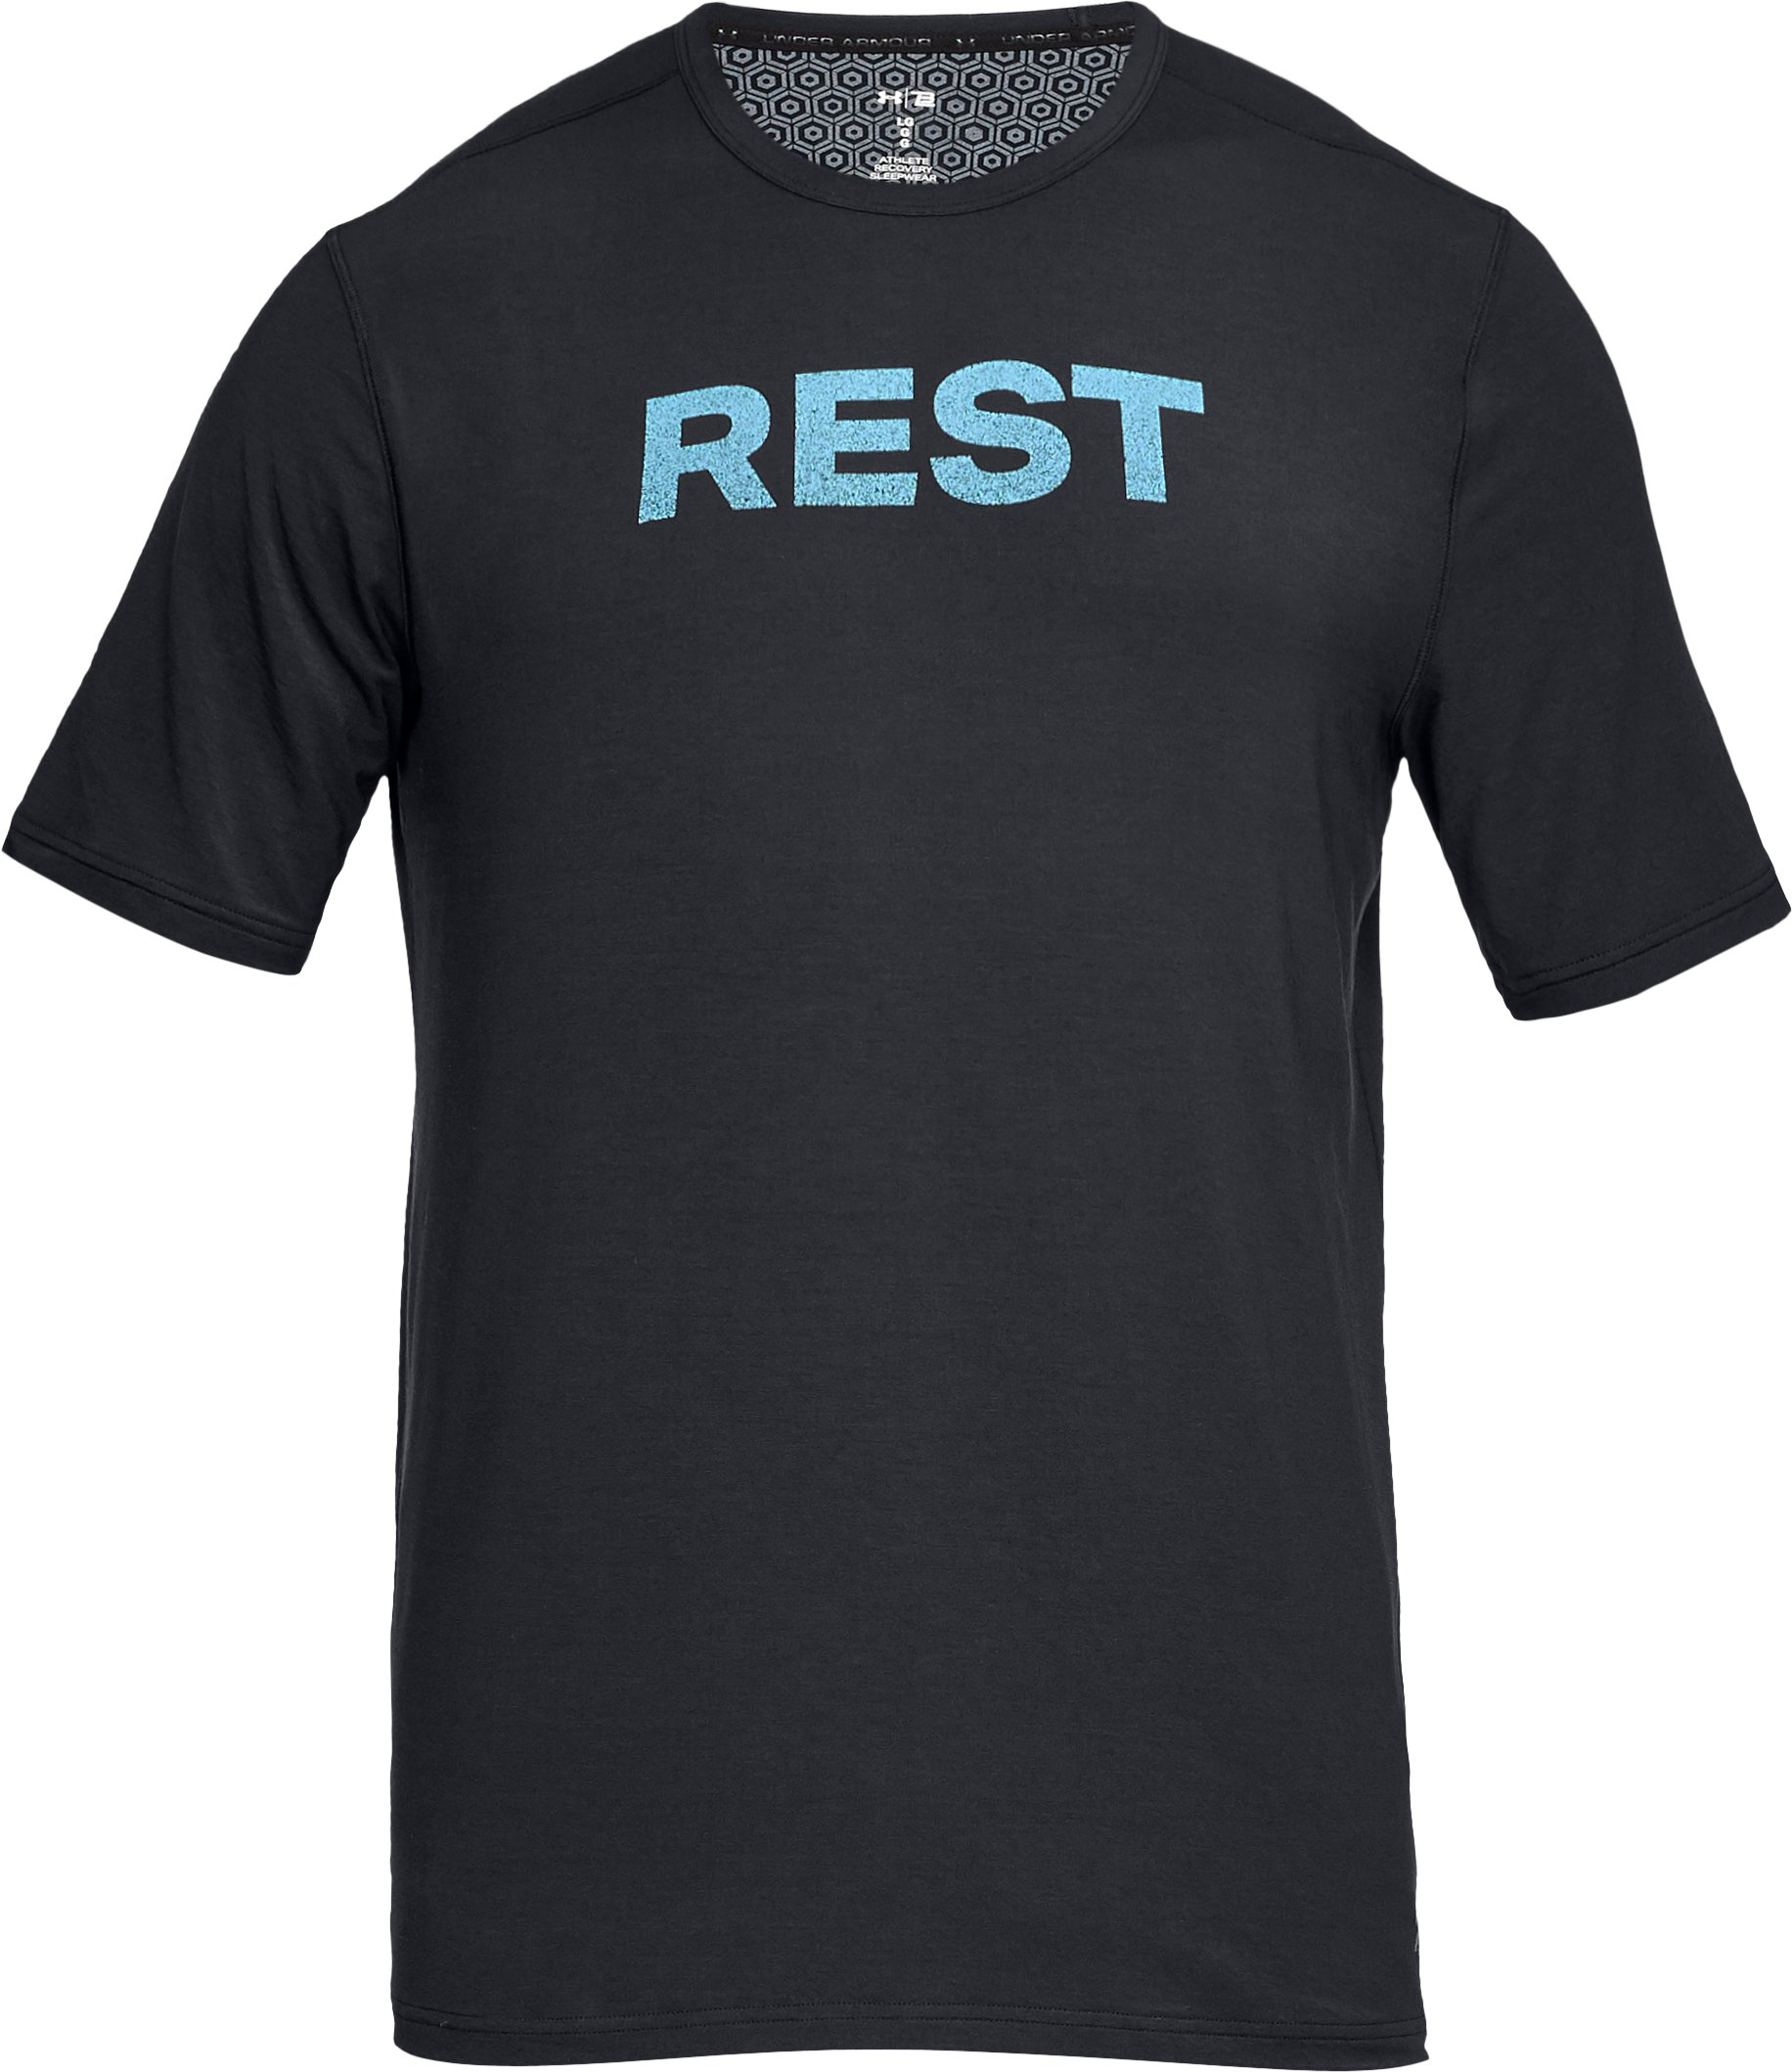 Men's Athlete Recovery Ultra Comfort Sleepwear REST Graphic T-Shirt, Black , undefined